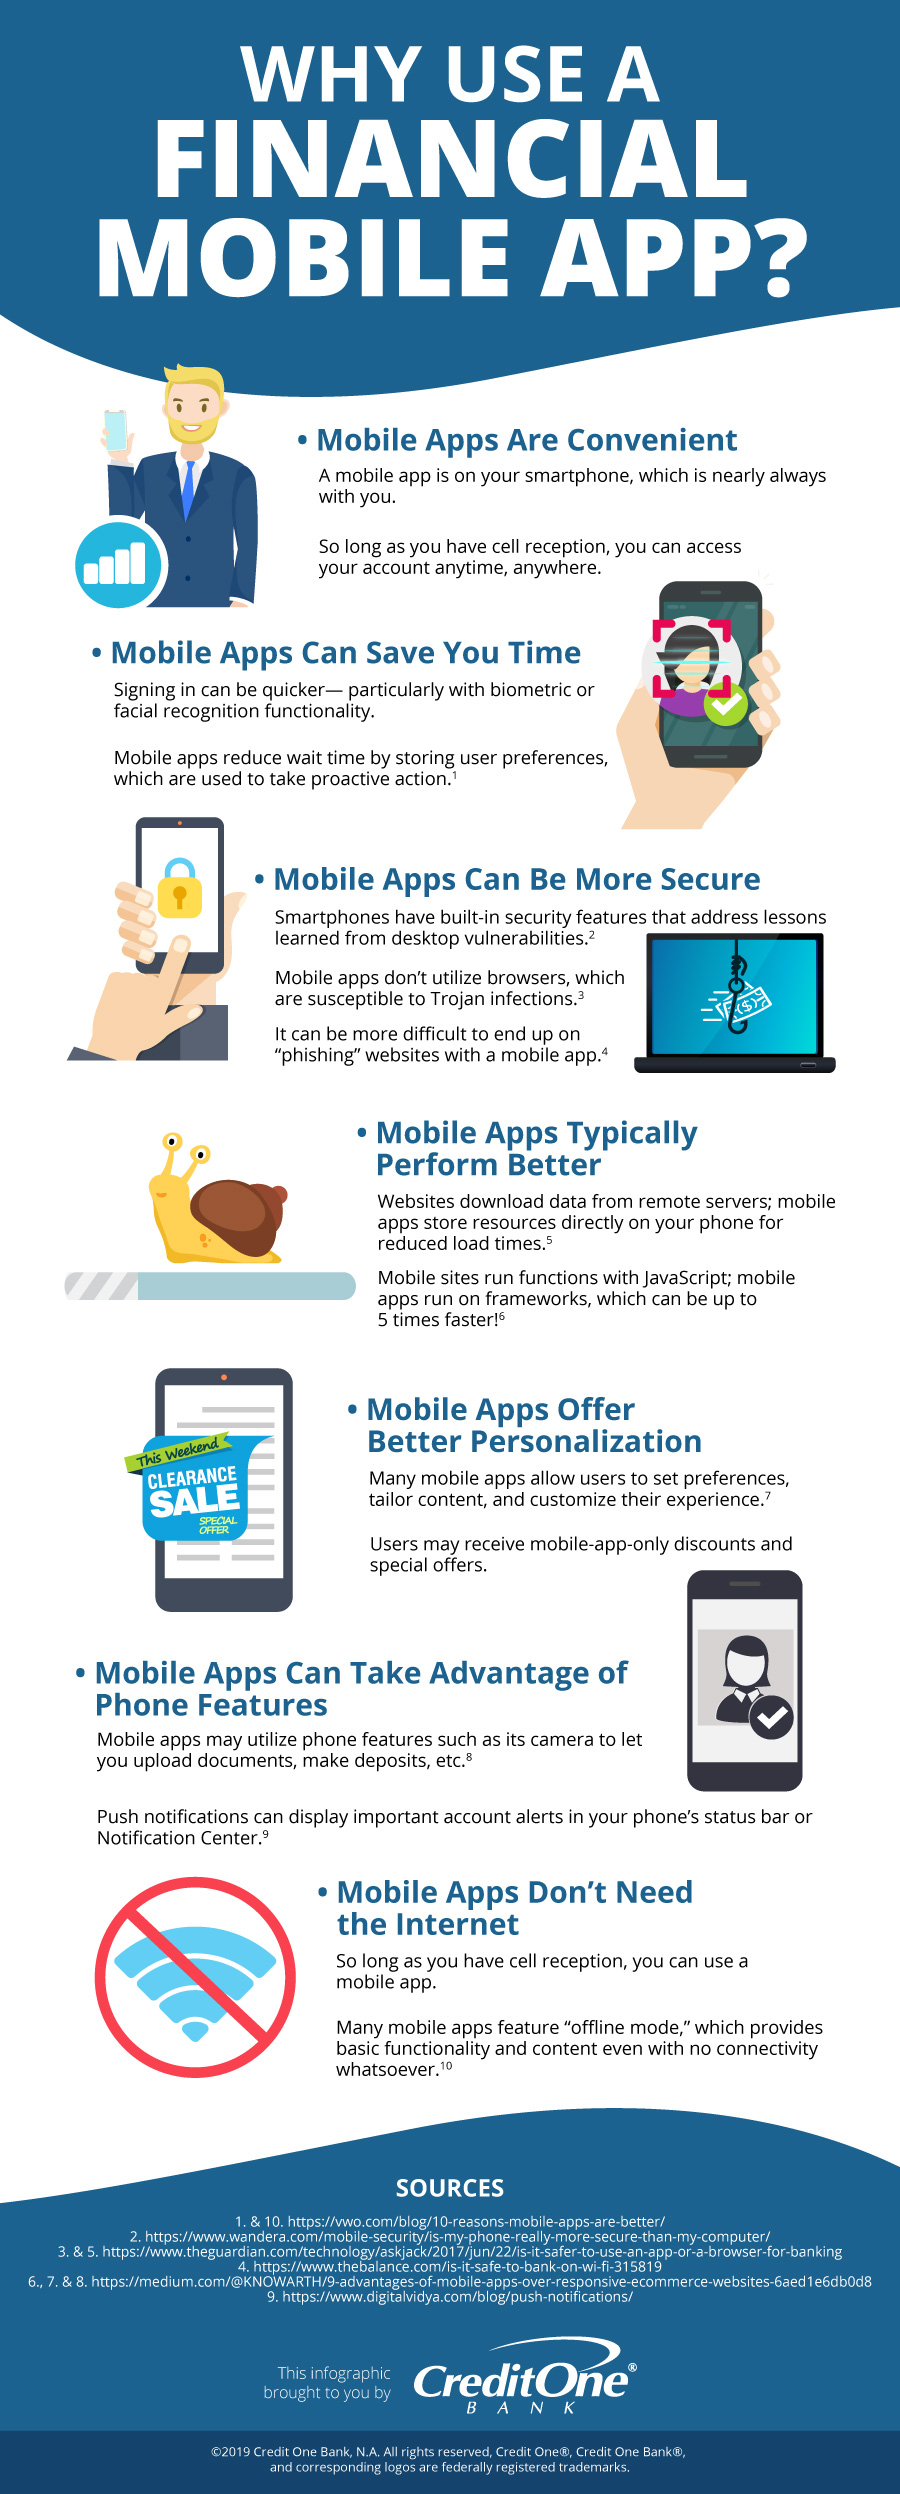 Financial Mobile App Advantages [Infographic]